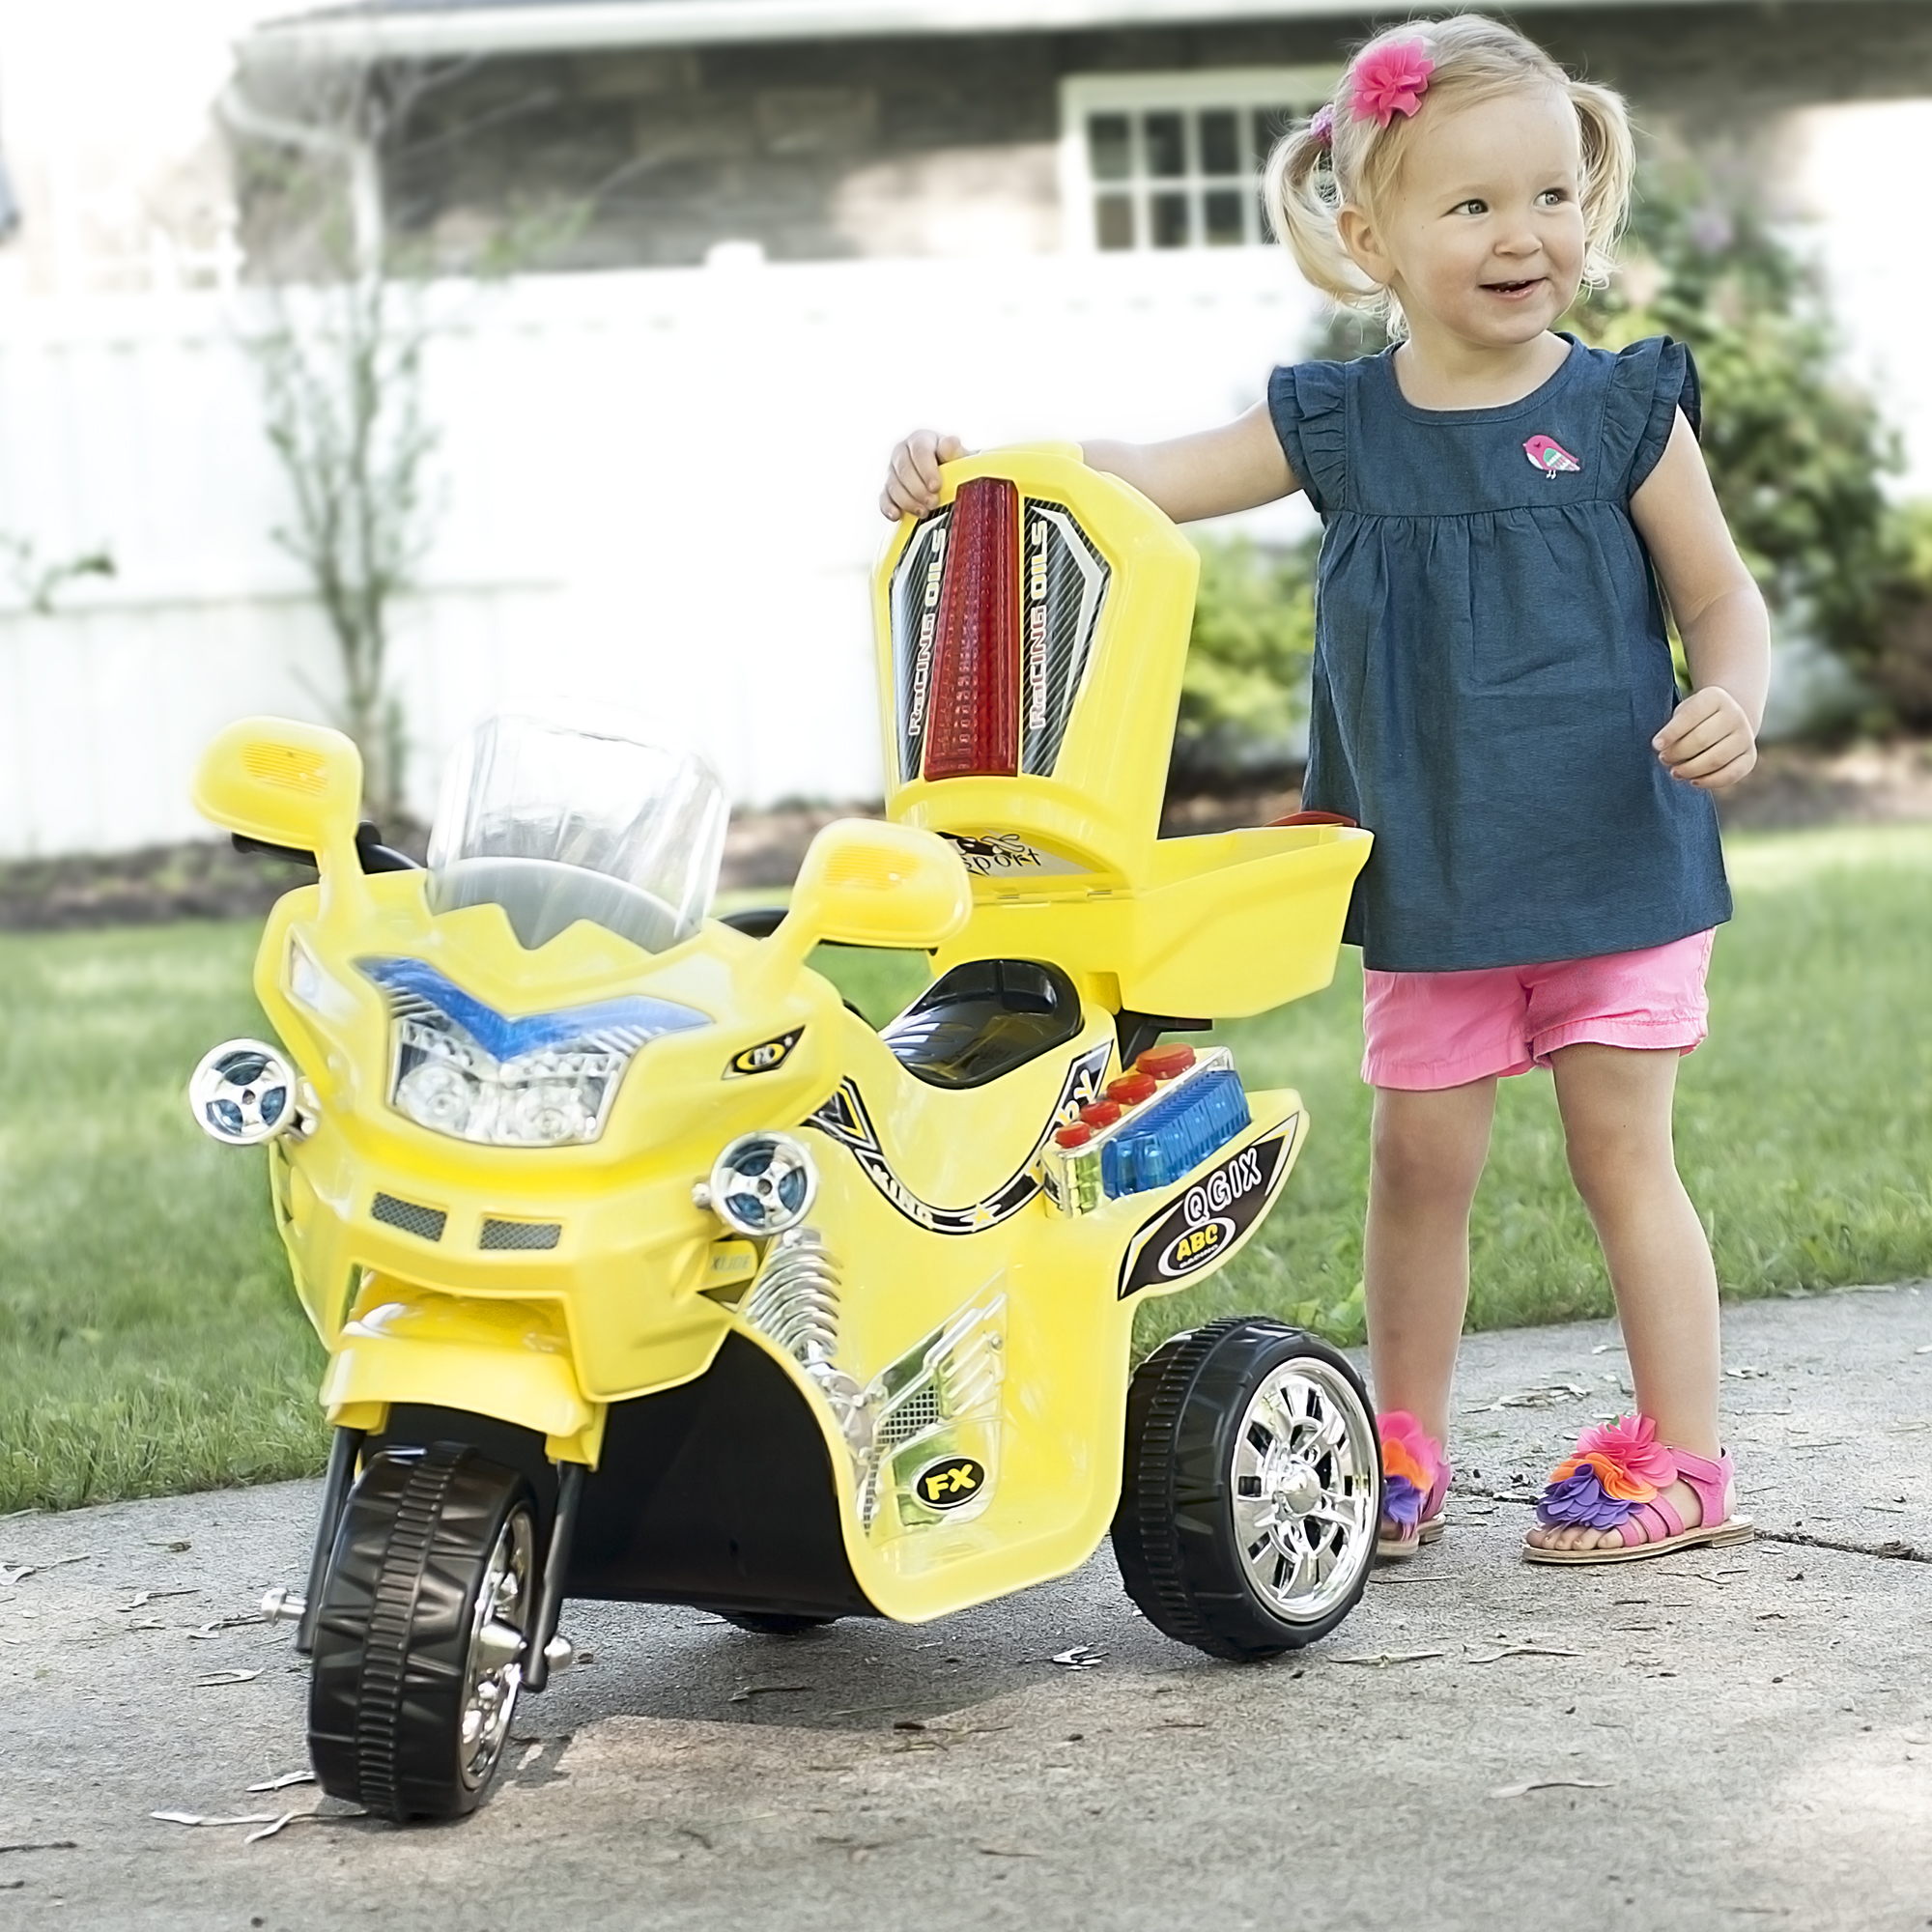 Ride on Toy, 3 Wheel Motorcycle Trike for Kids by Hey! Play! � Battery Powered Ride on... by Trademark Global LLC